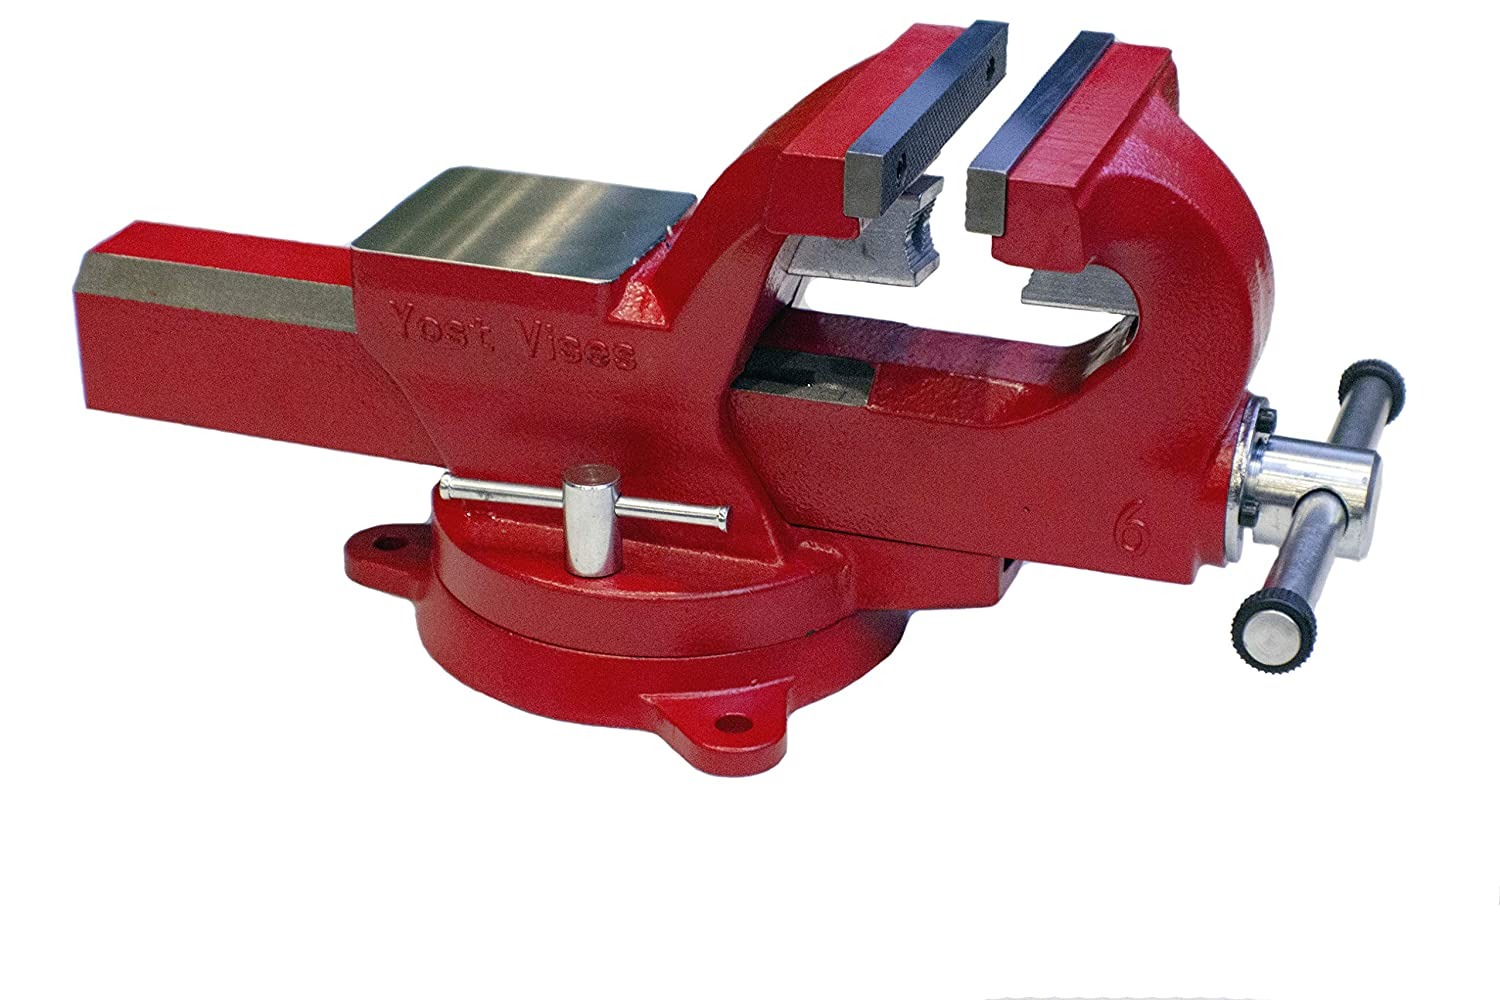 Yost Vises ADI-6, 6 Inch 130,000 PSI Austempered Ductile Iron Bench Vise with 360-Degree Swivel Base superseding Yost FSV-6